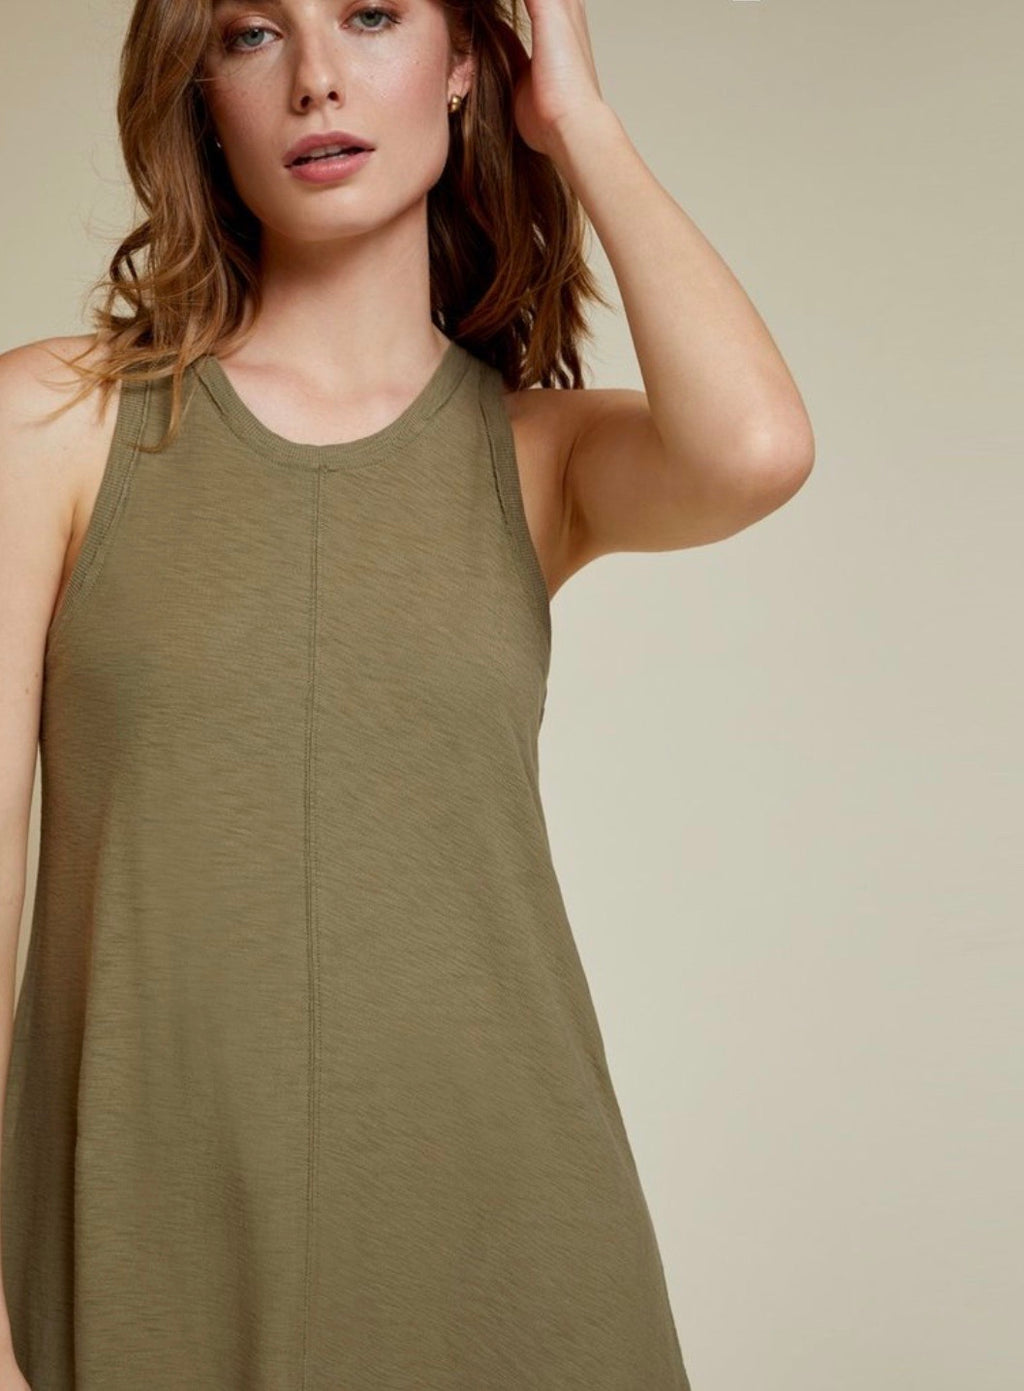 Lulu A-line dress - eucalyptus